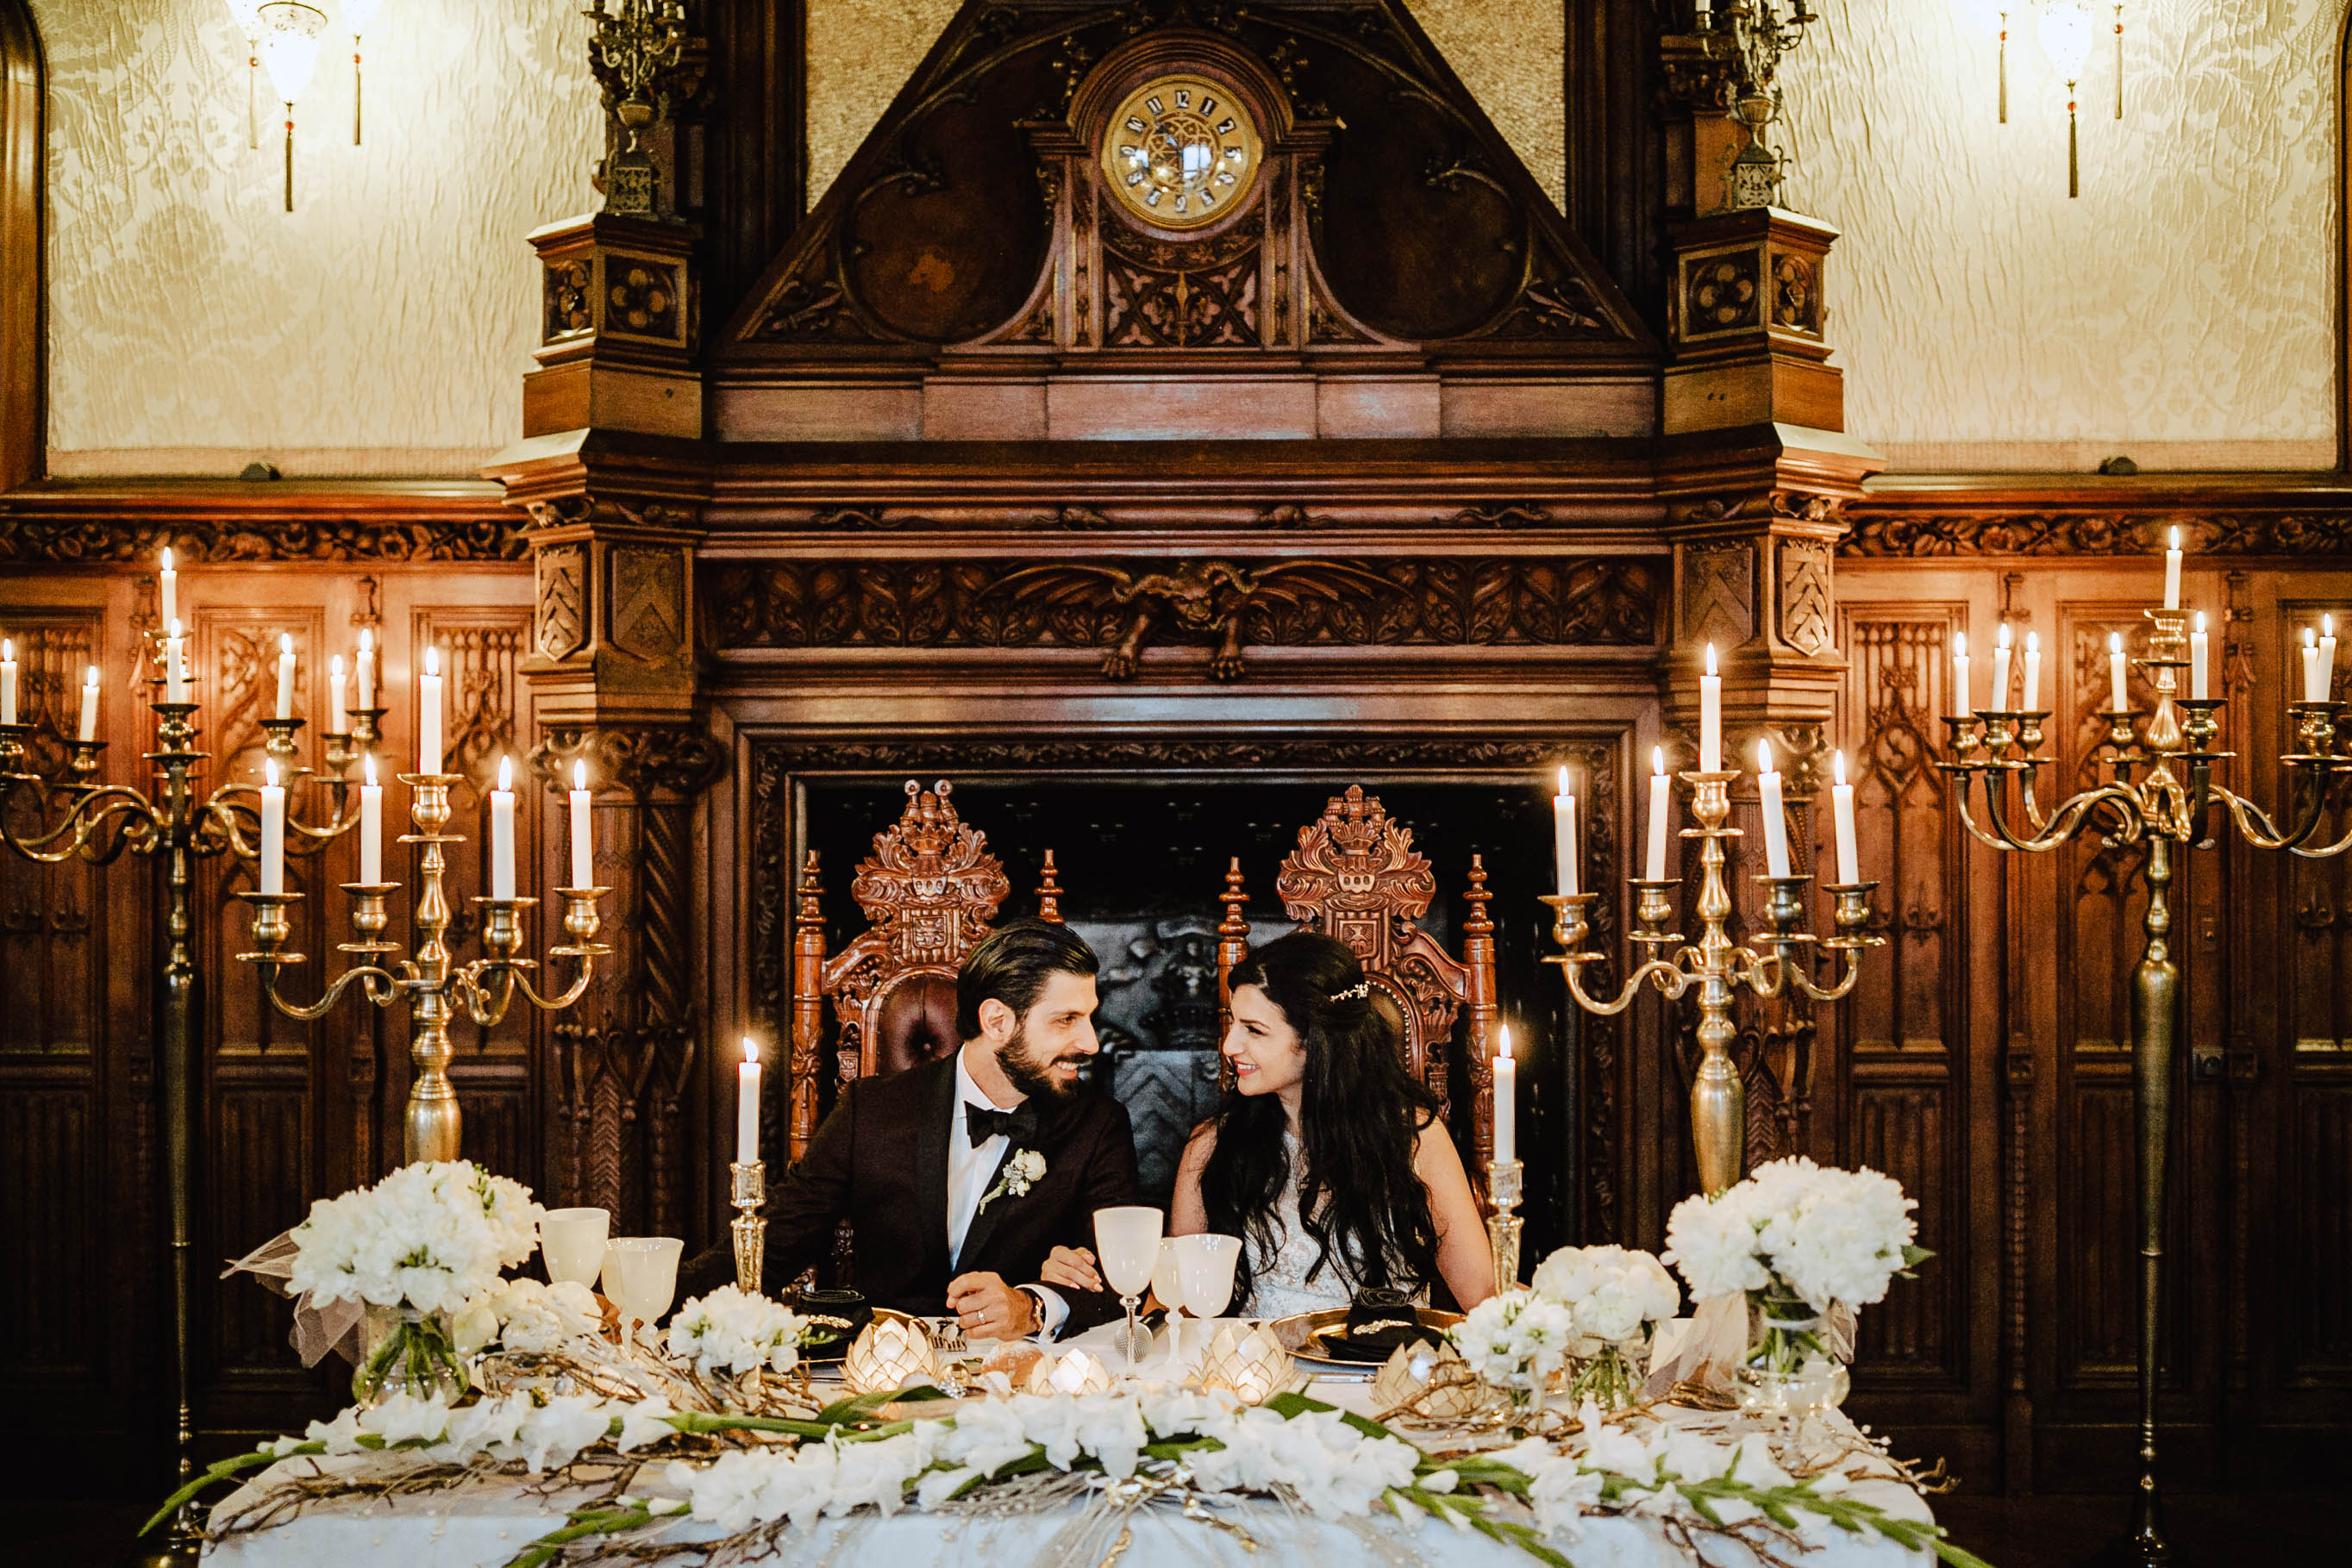 bride and groom at wedding table chateau challain candles